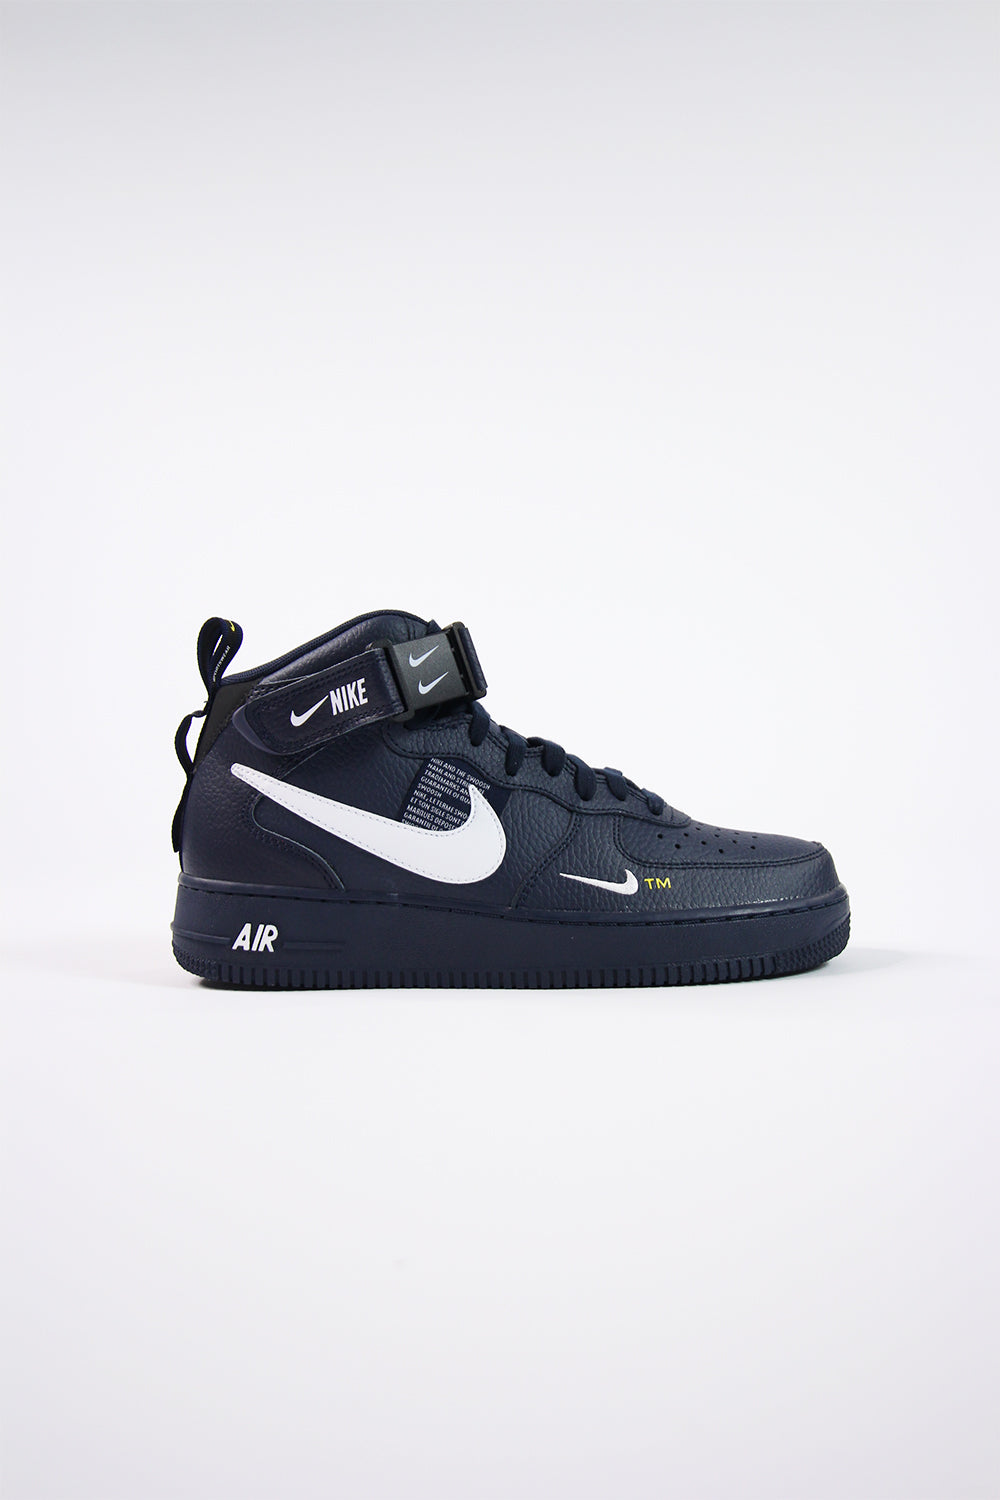 Nike Air Force 1 Mid' 07 LV8 (ObsidianWhite Black Tour